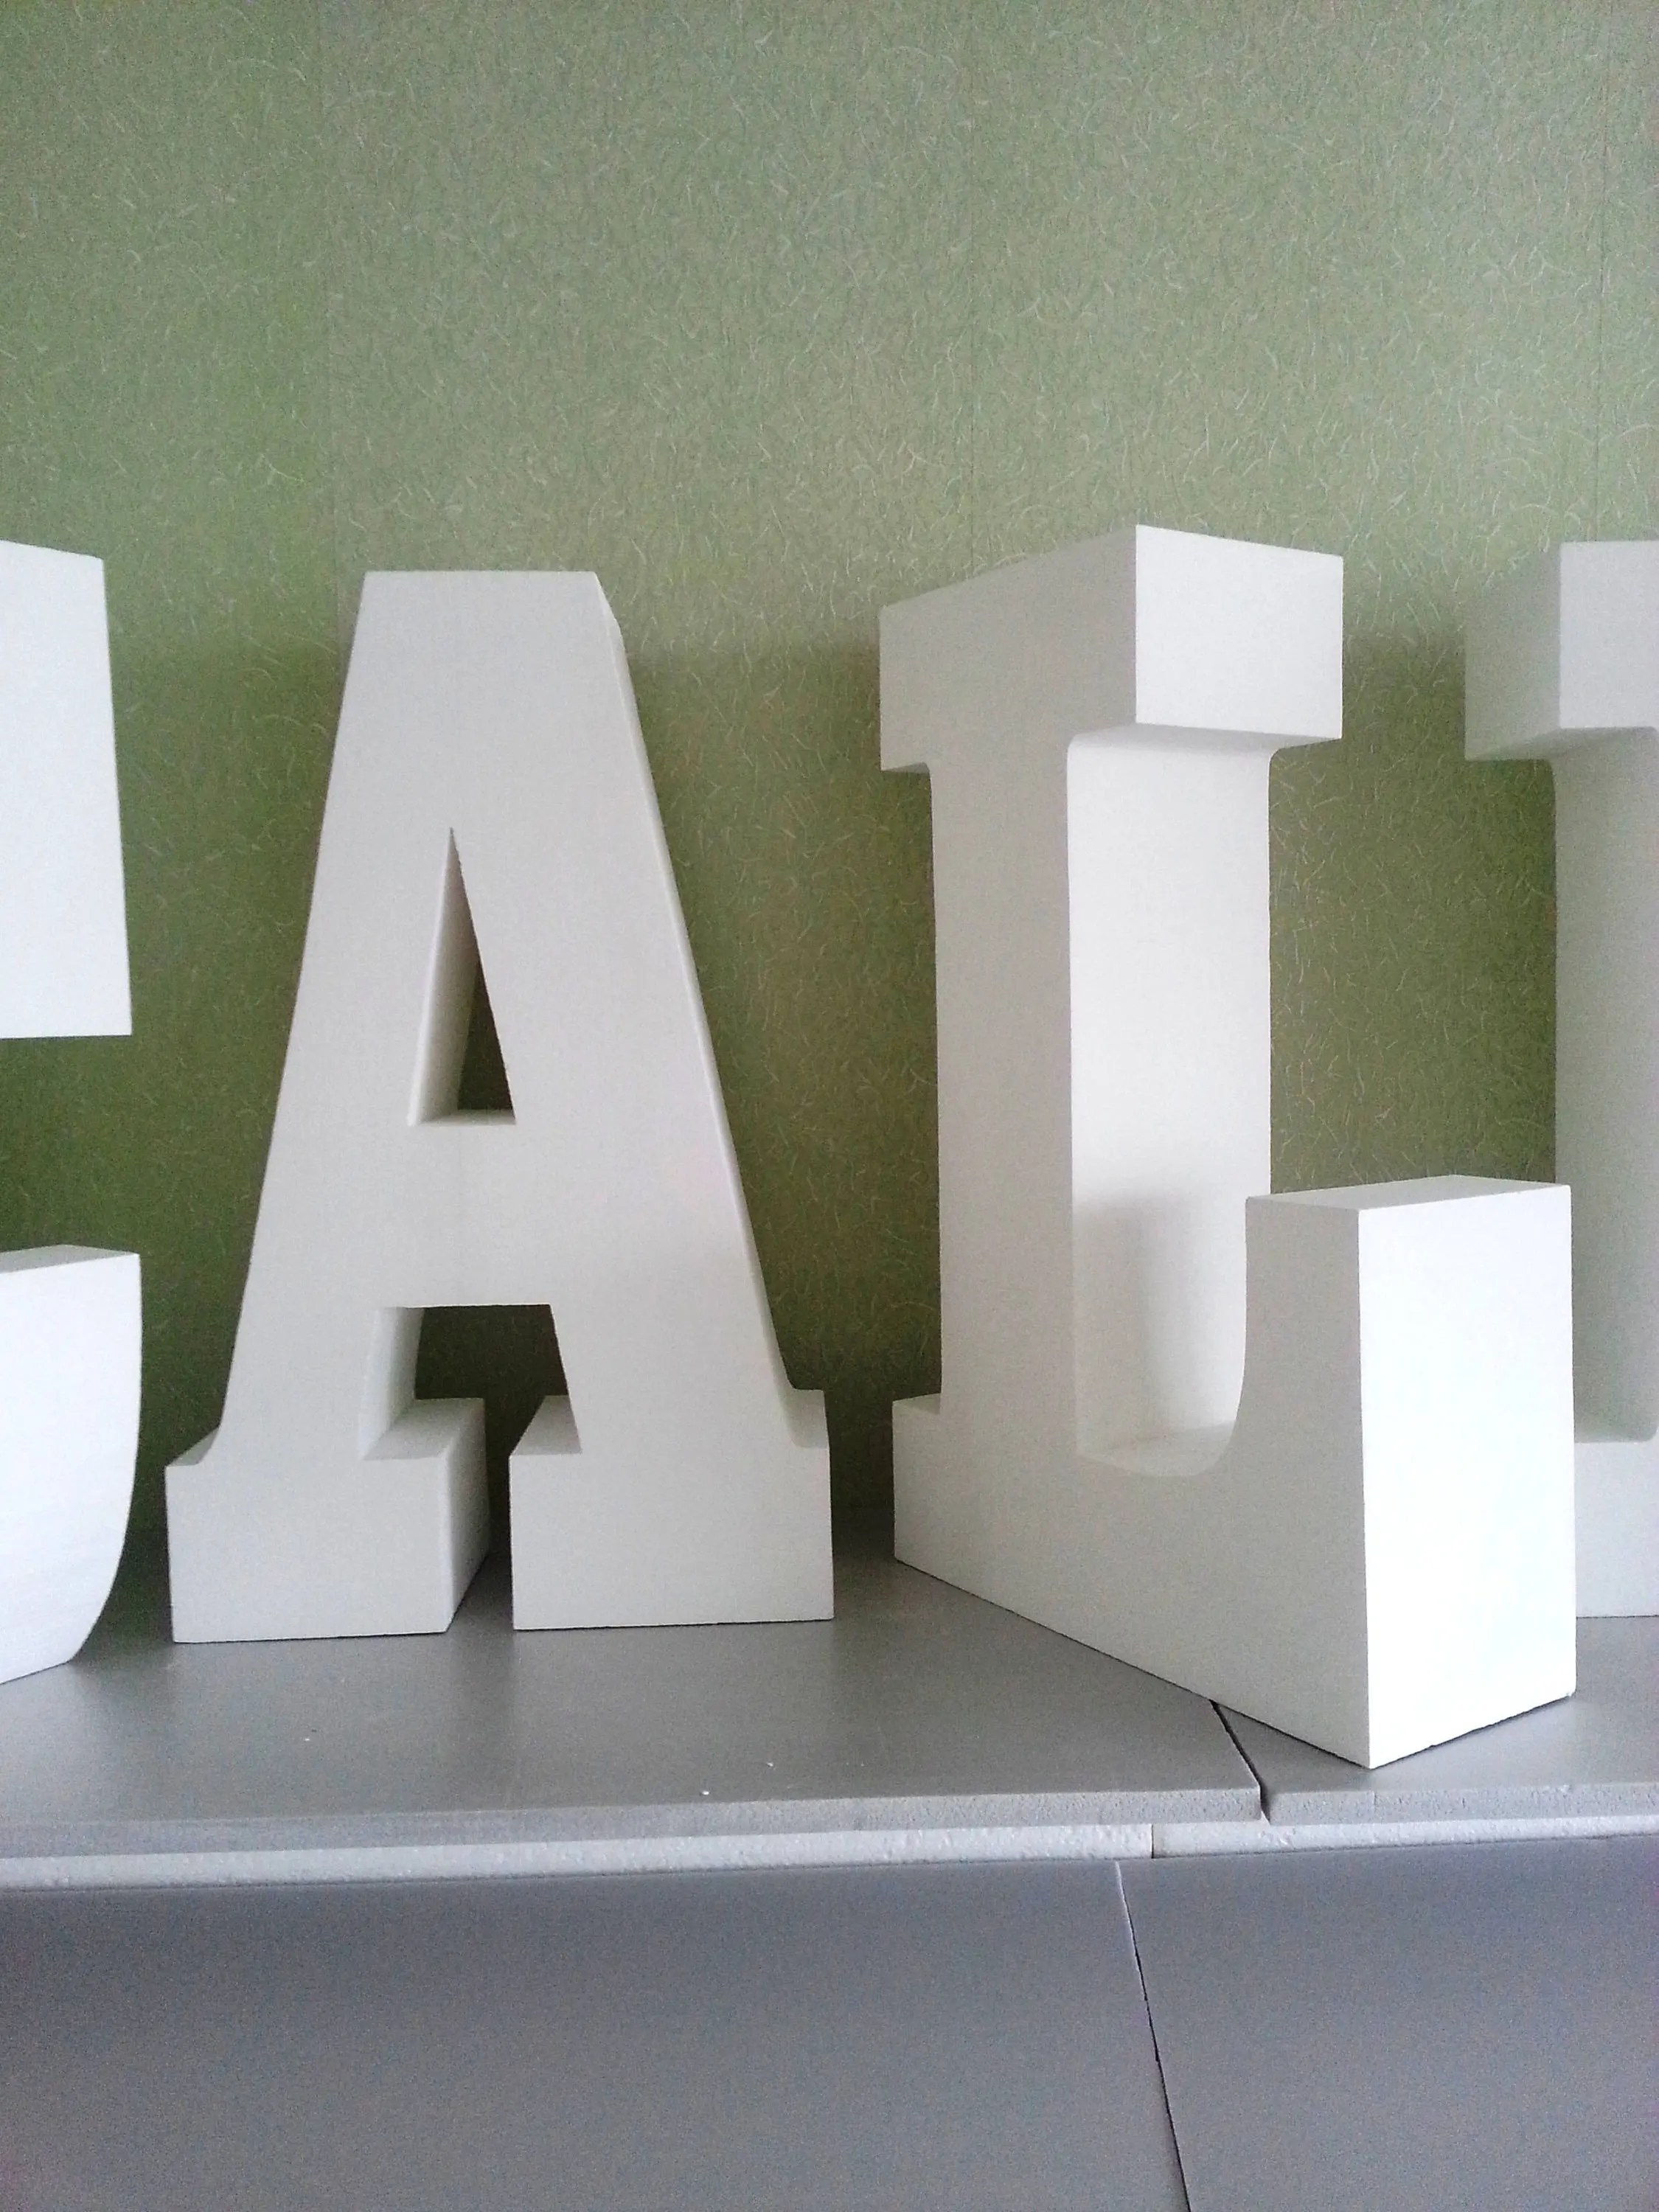 giant letters 30 inches